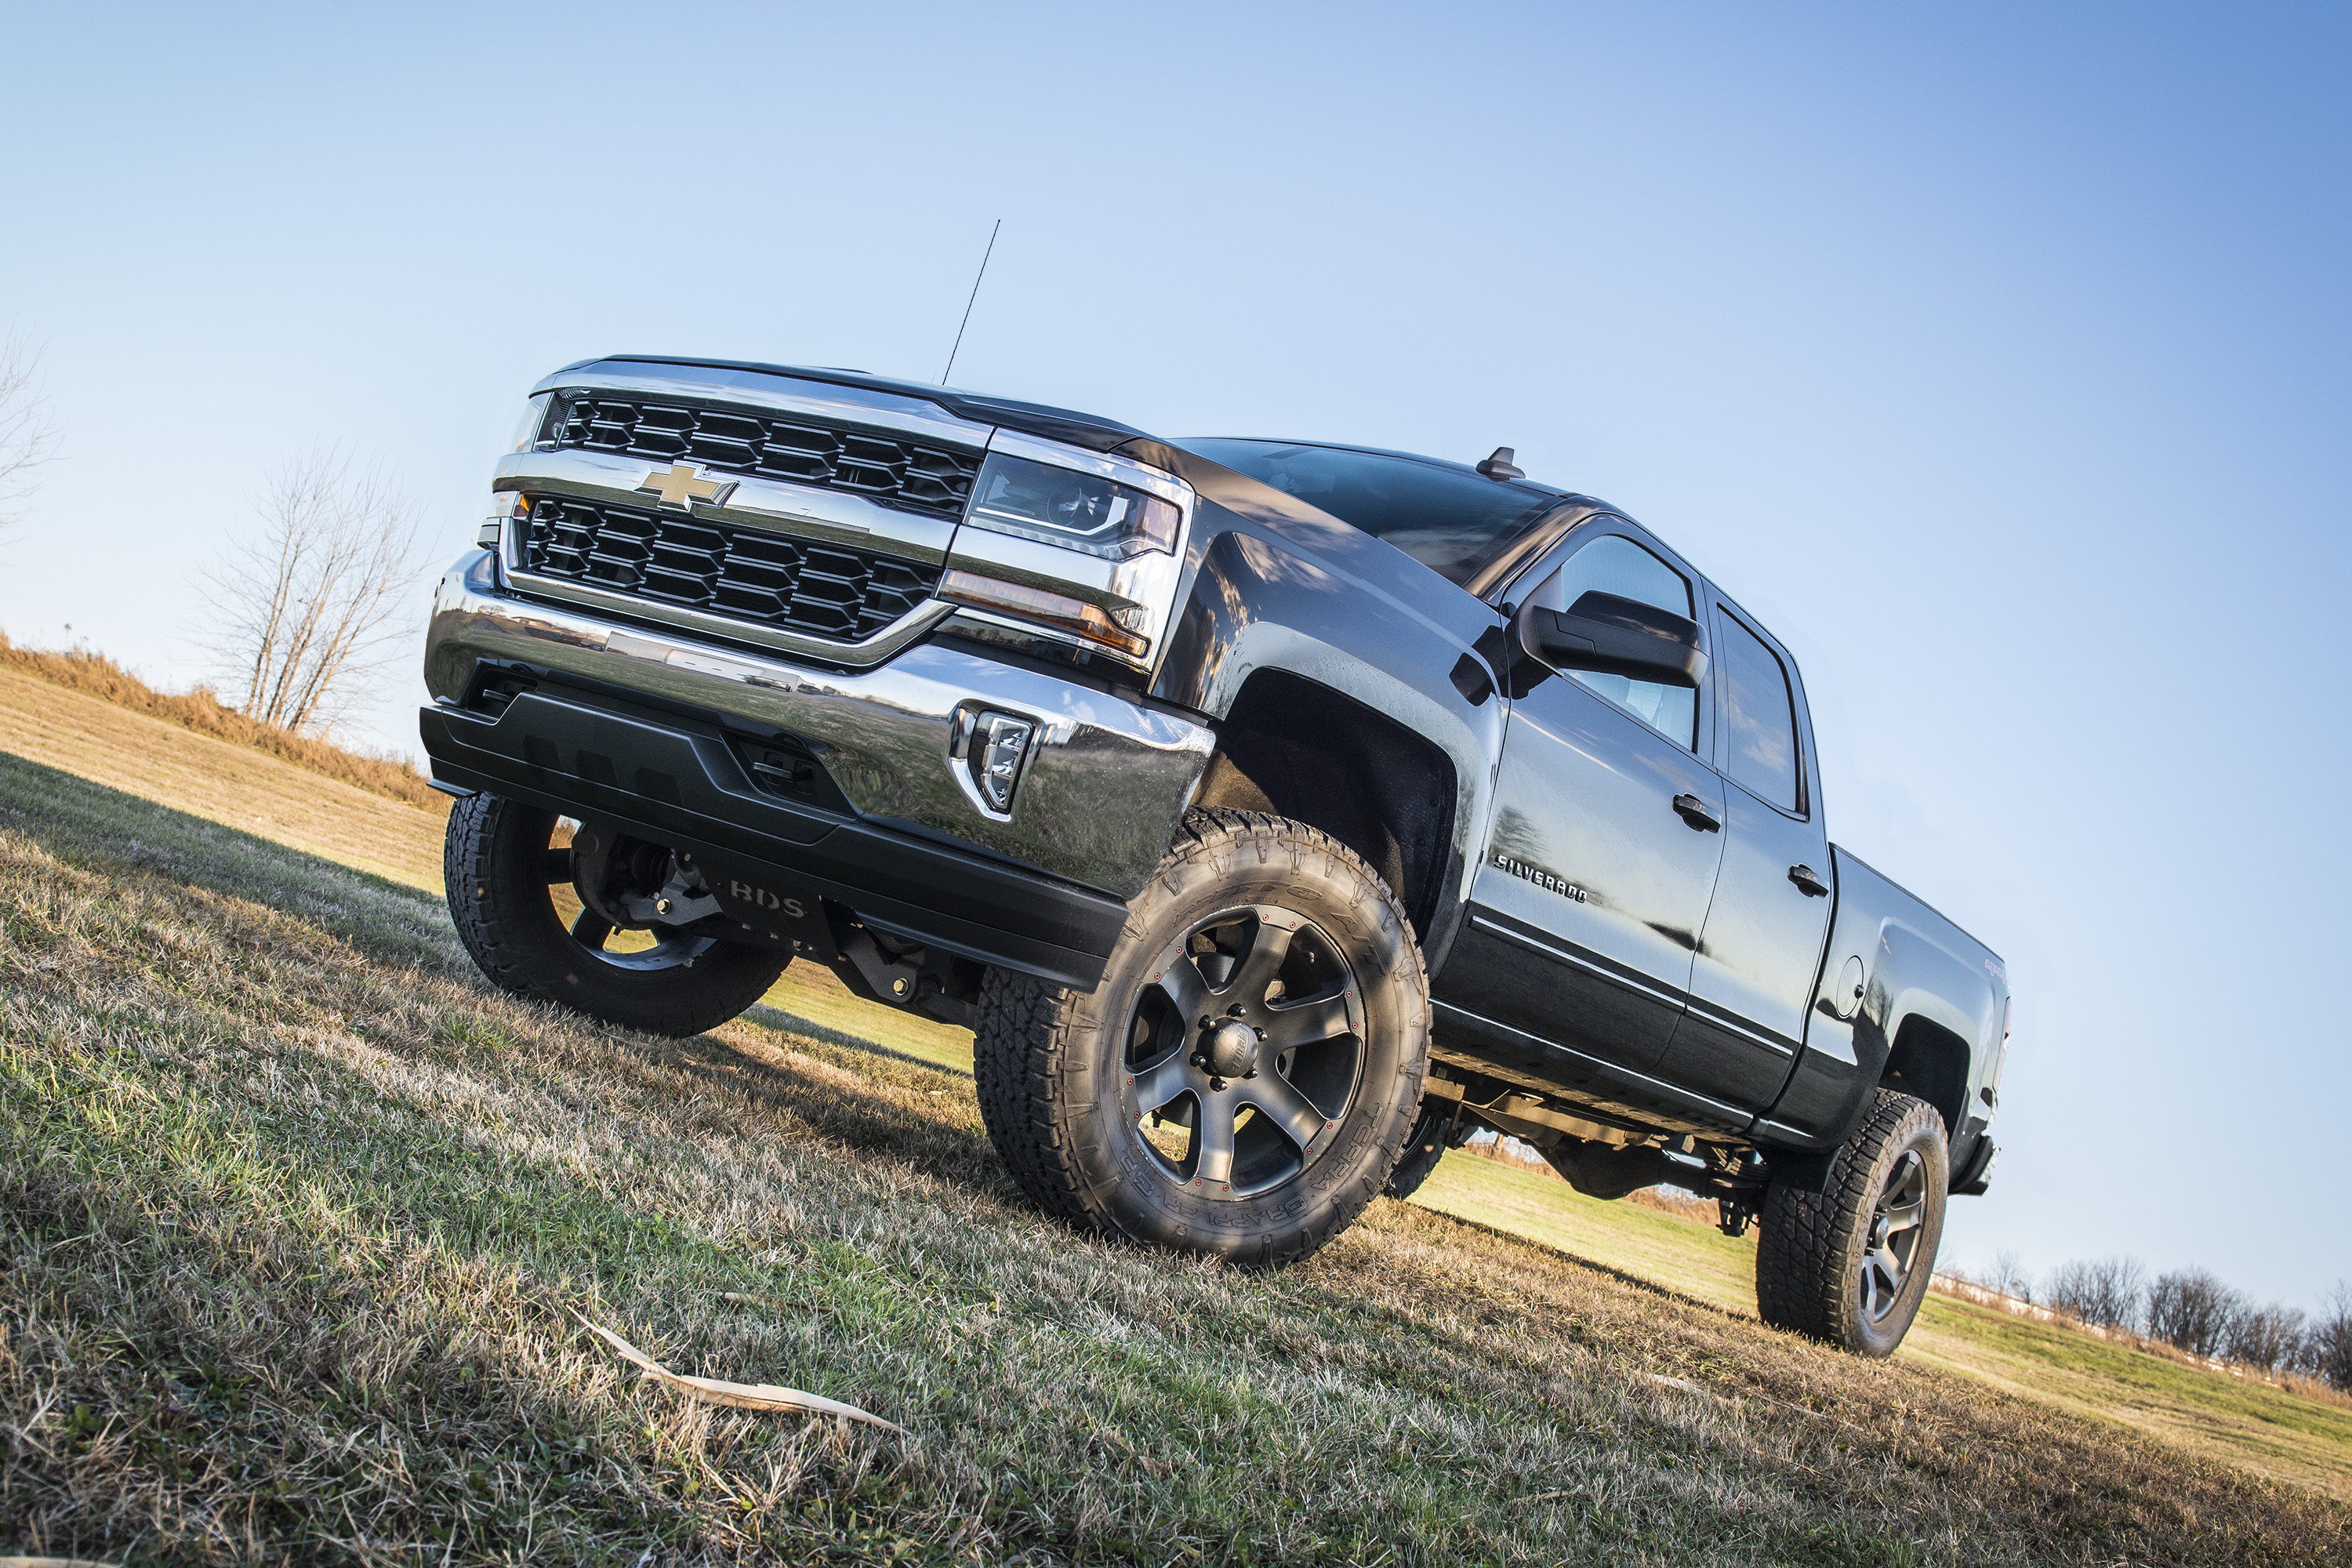 2019 Chevy Silverado Info Pictures Specs Wiki  GM